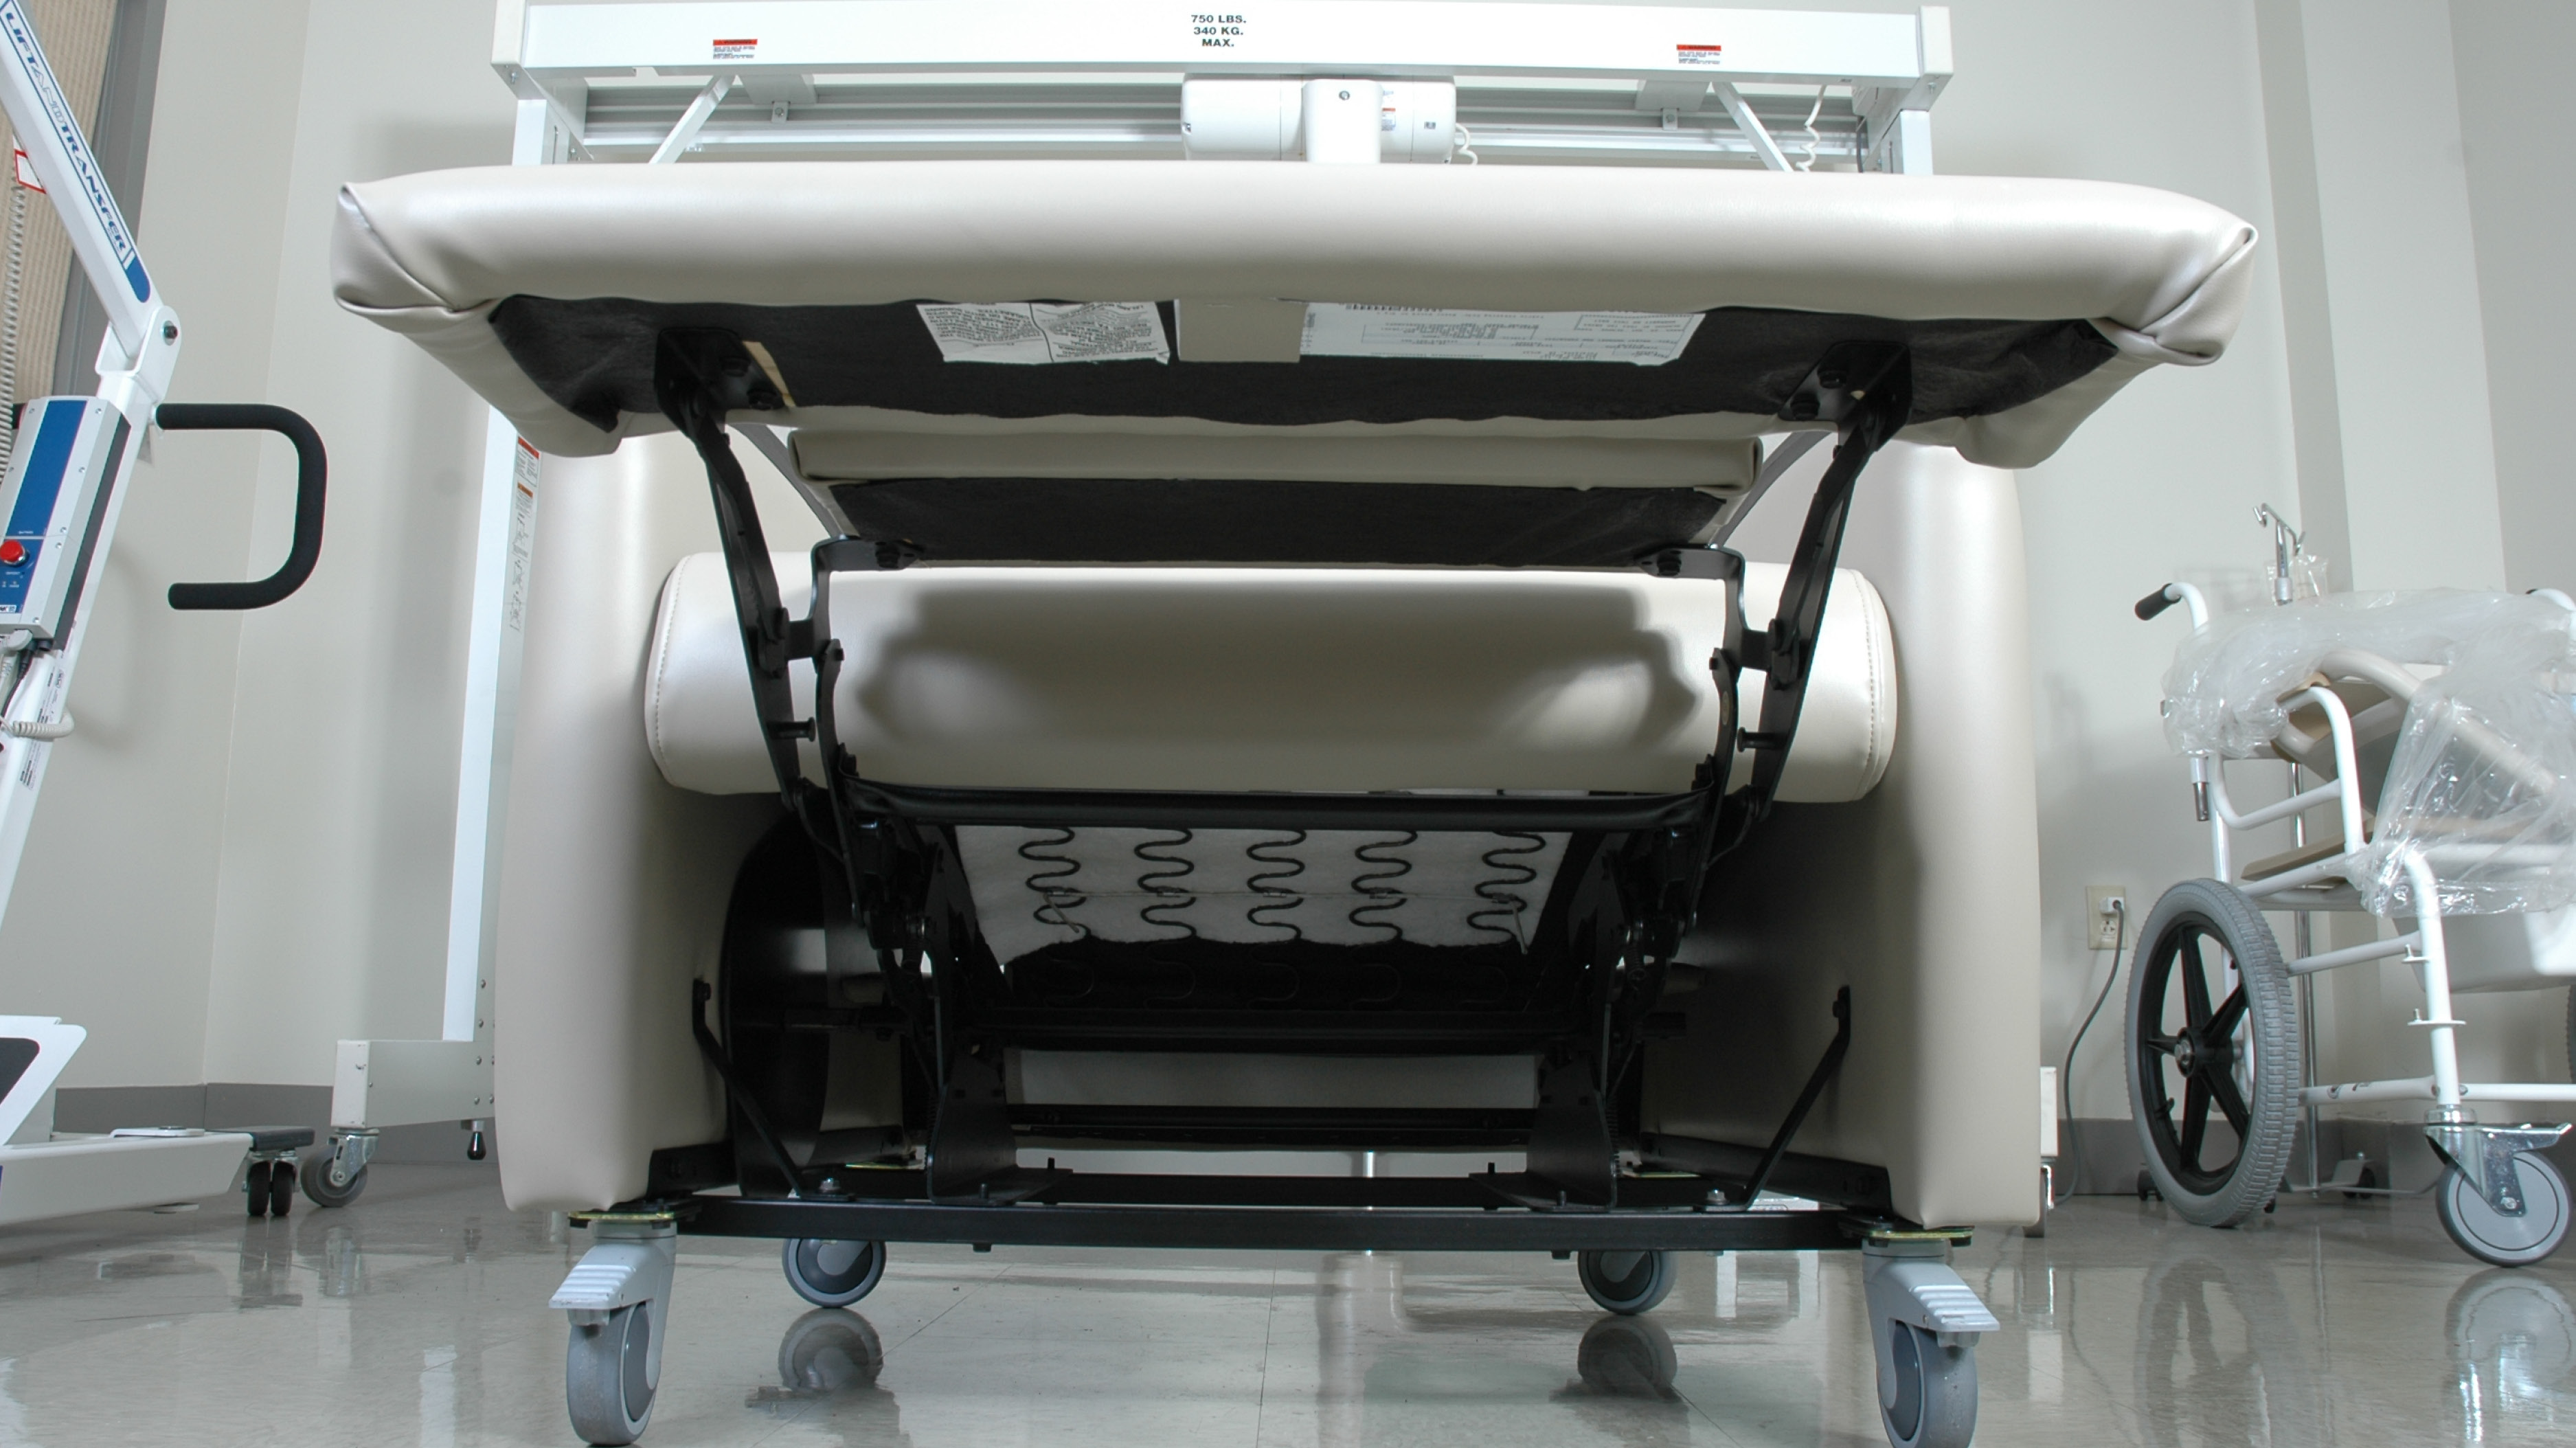 The Underside Of A Bedside Recliner Showing Steel-To-Steel Construction